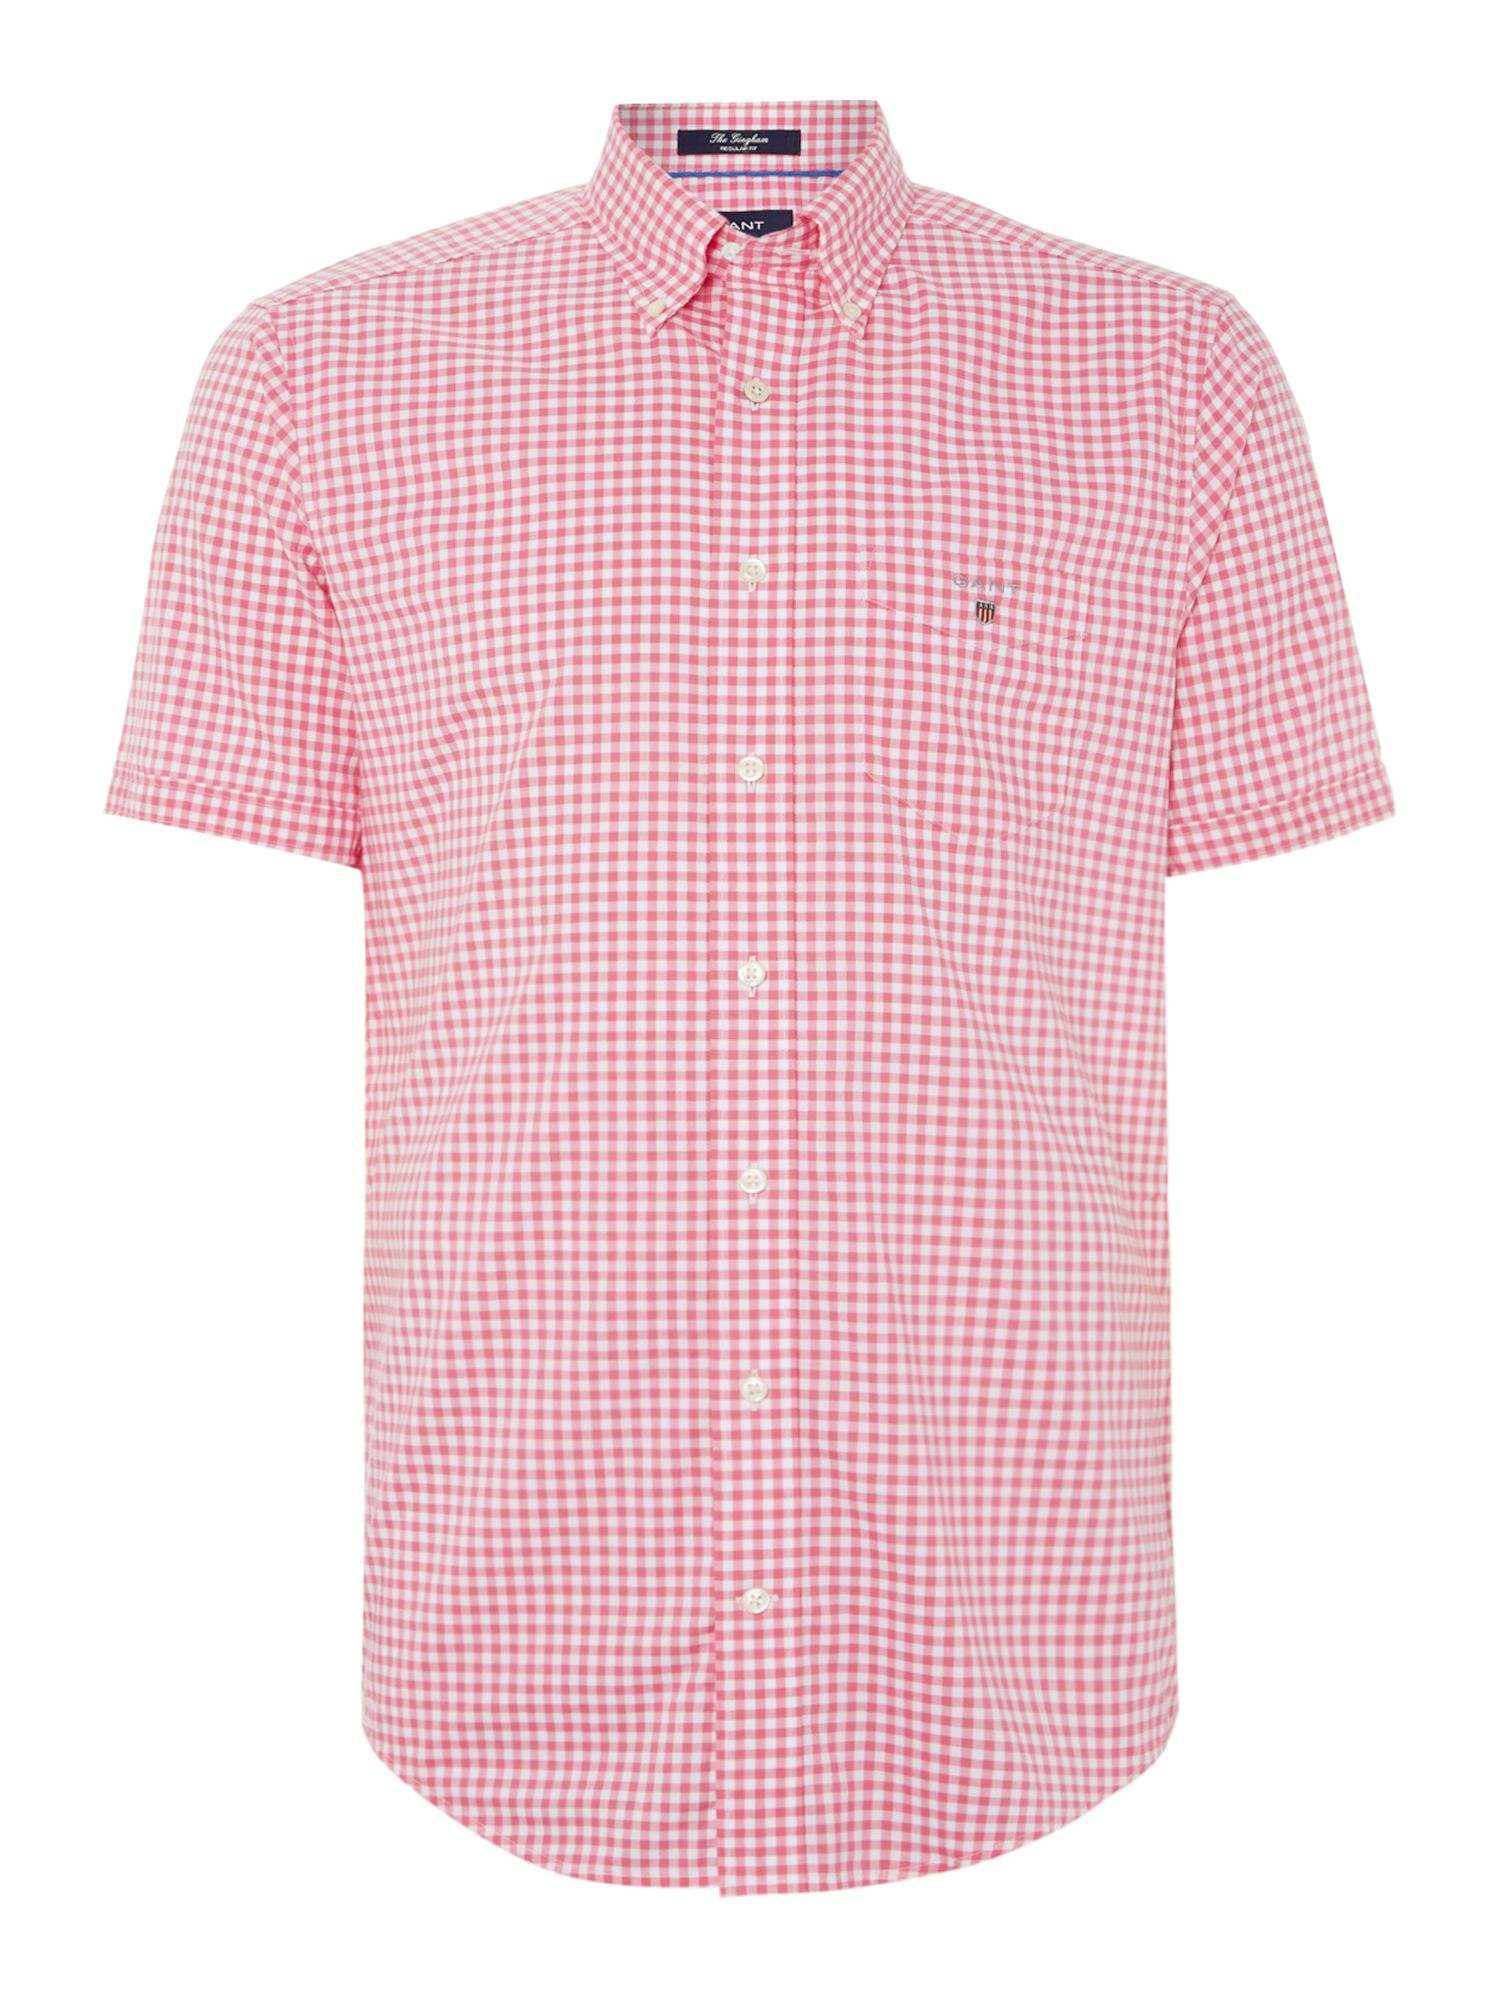 Gant gingham classic fit short sleeve shirt in pink for for Pink gingham shirt ladies